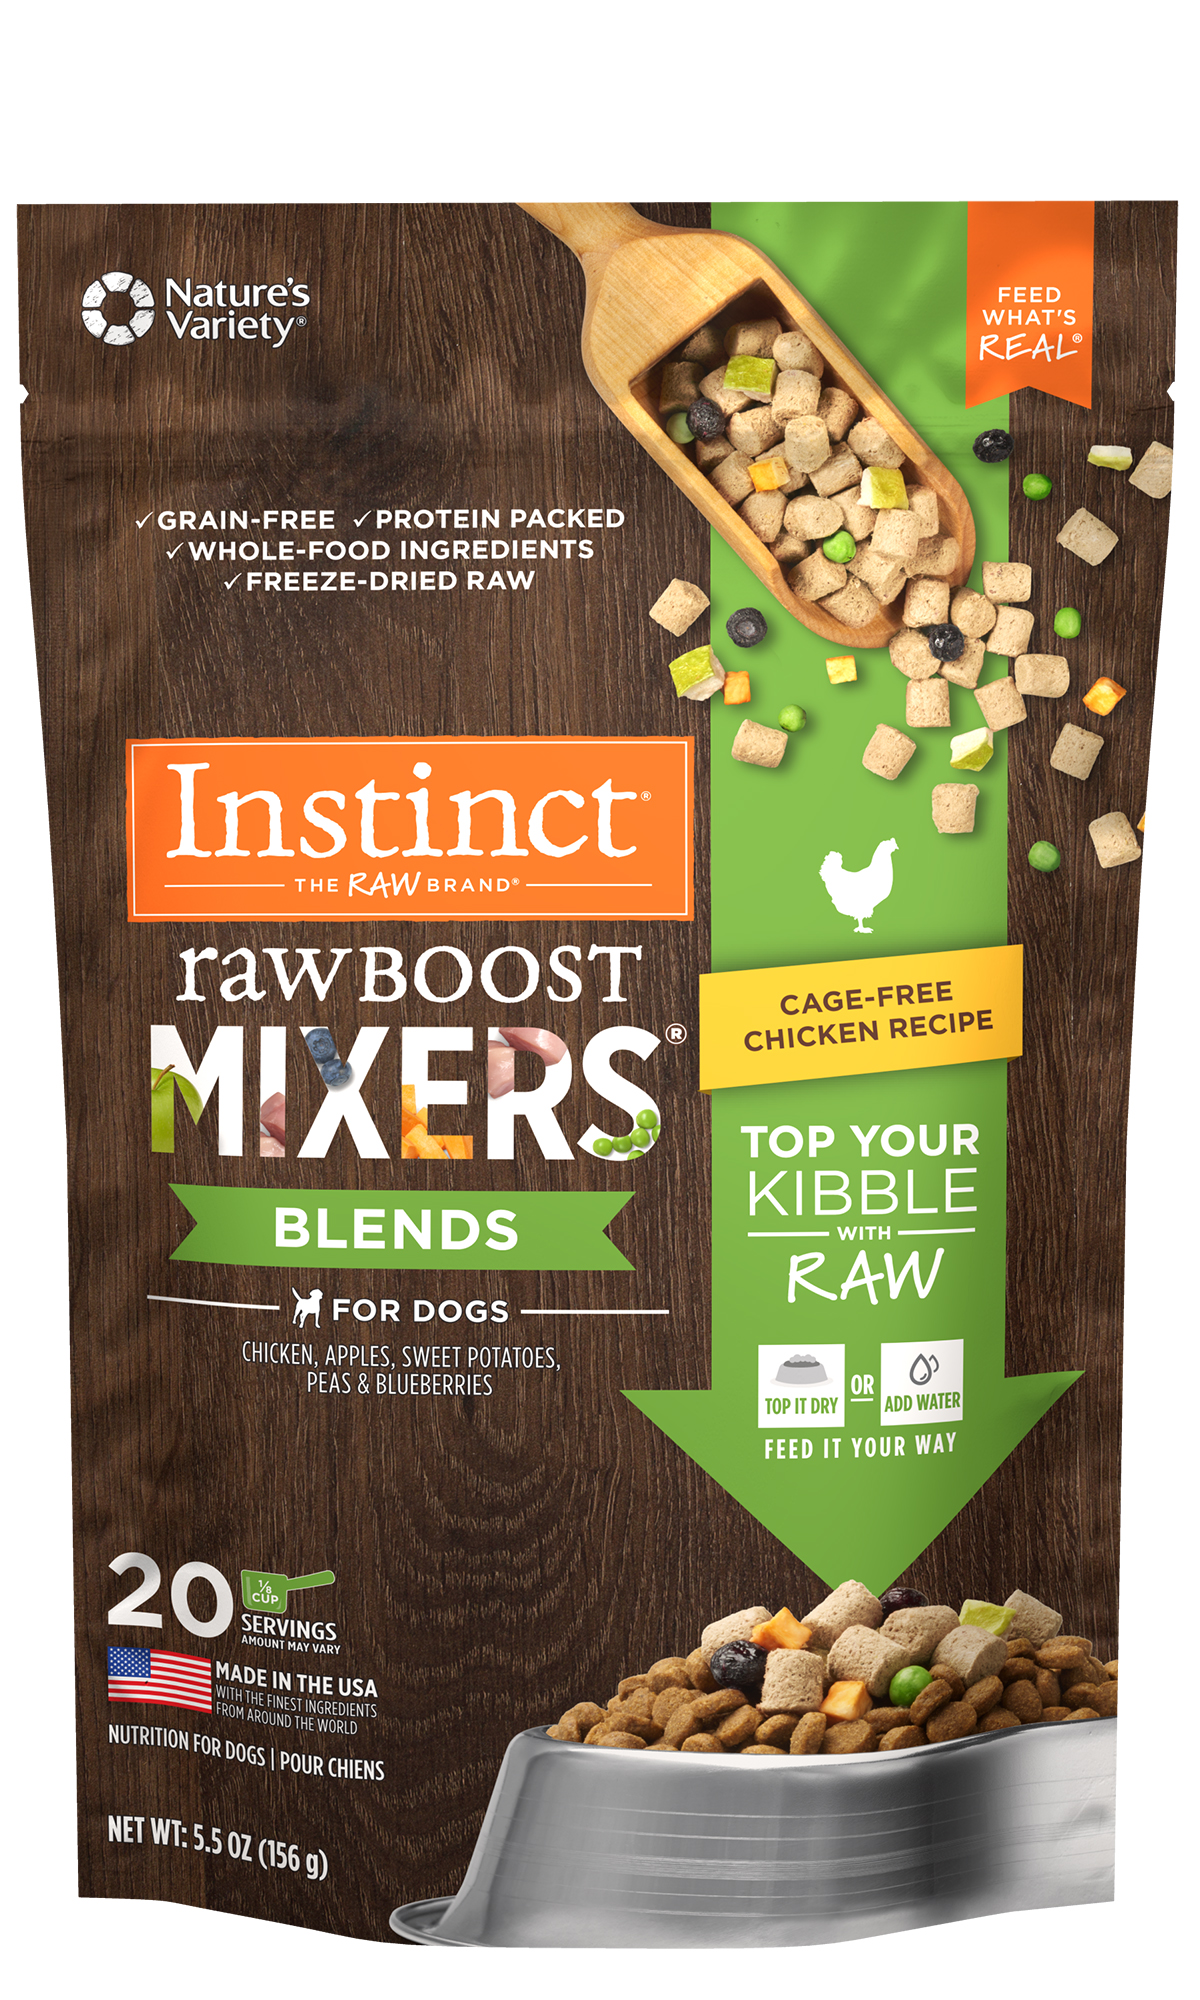 Instinct by Nature's Variety Raw Boost Mixers Cage-Free Chicken Recipe, .75-oz